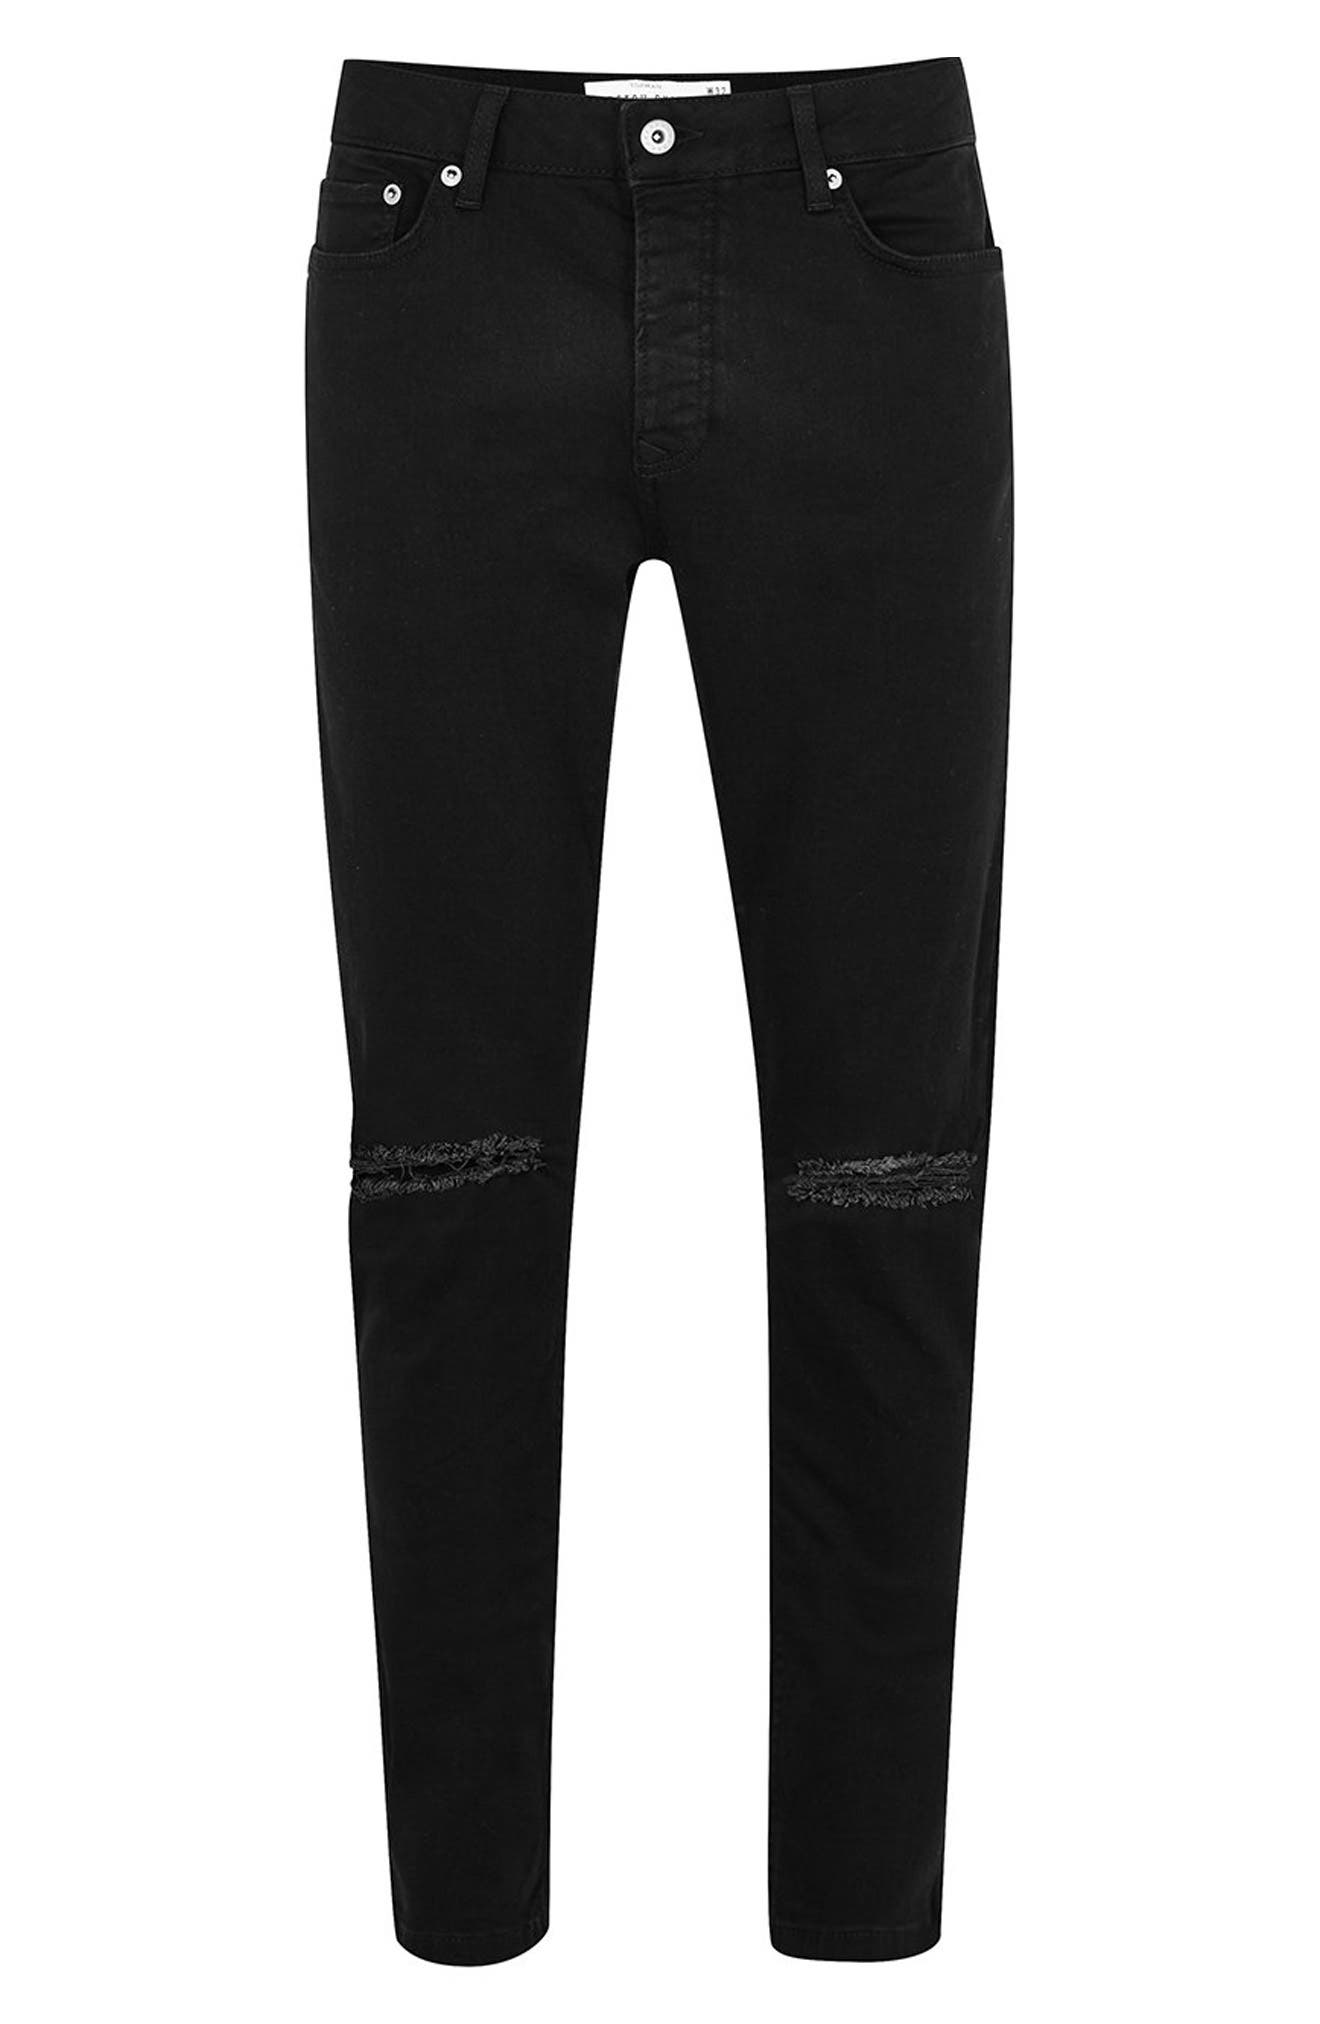 TOPMAN, Double Ripped Skinny Fit Jeans, Alternate thumbnail 5, color, BLACK